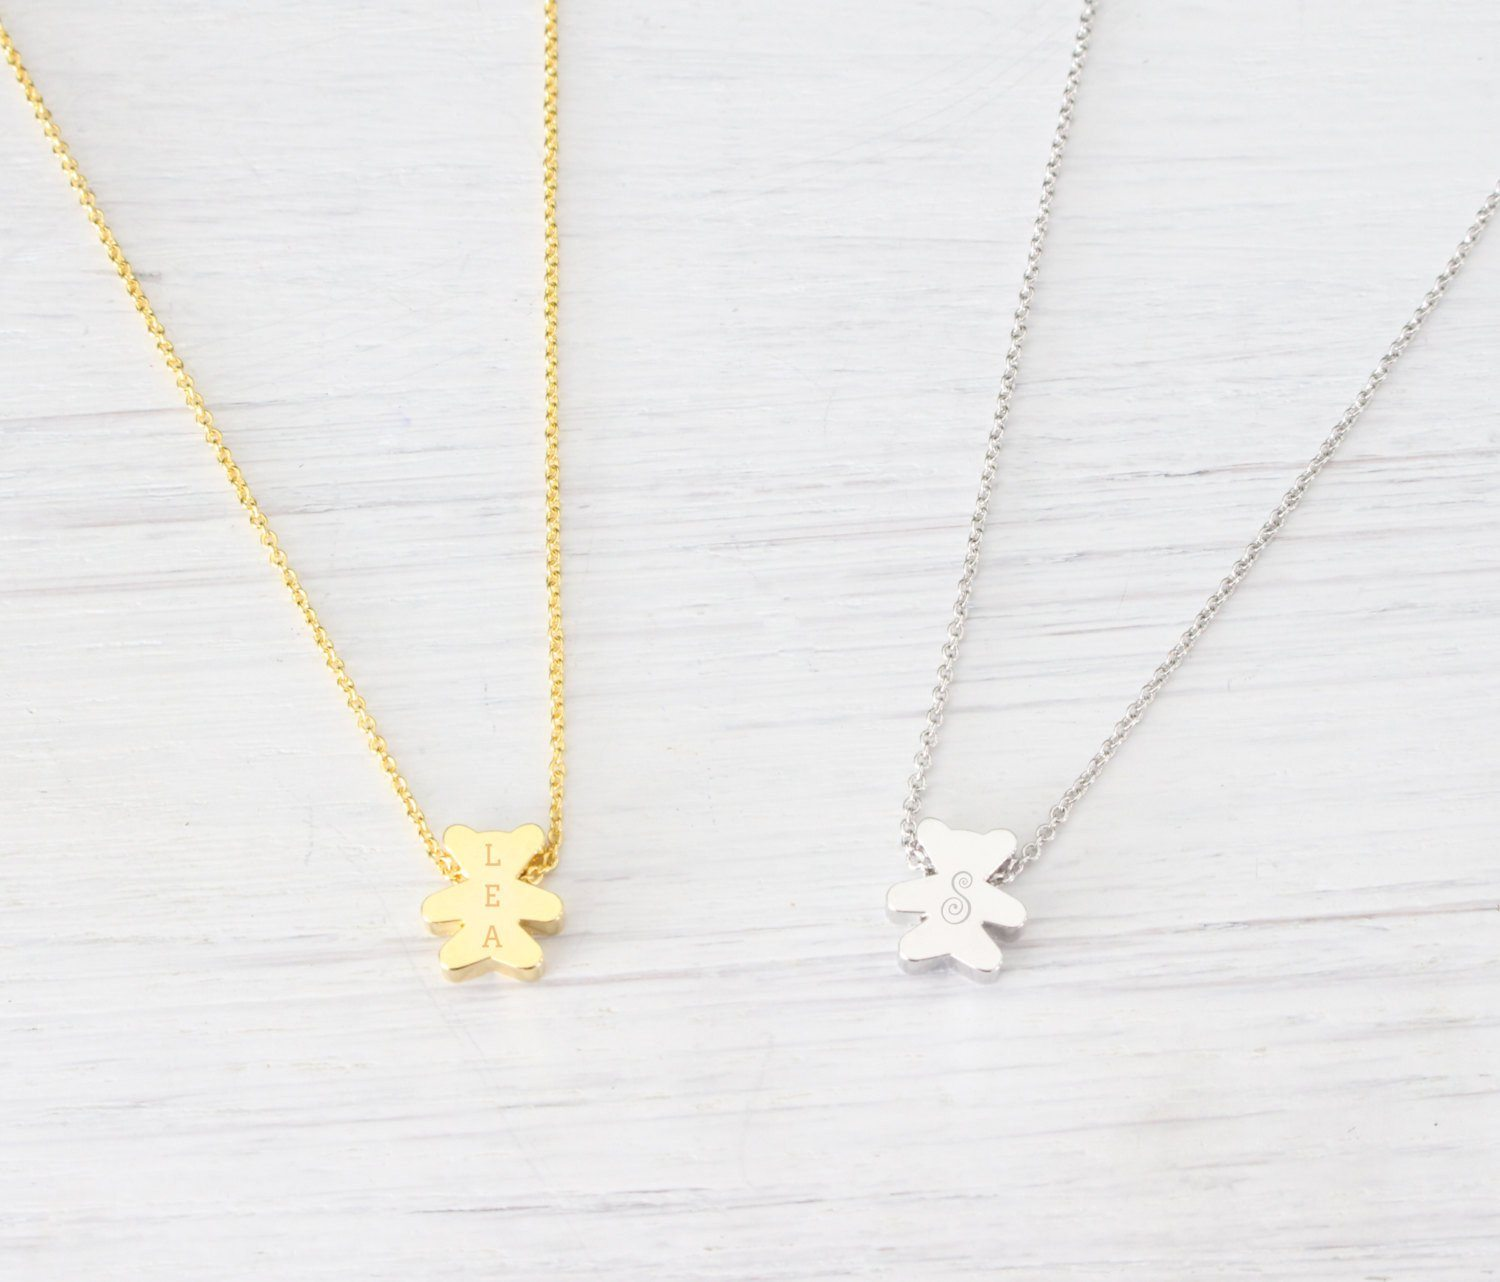 Tiny Dainty Personalized Engraved Teddy Bear Gold Necklace - product_type] - Beautiz